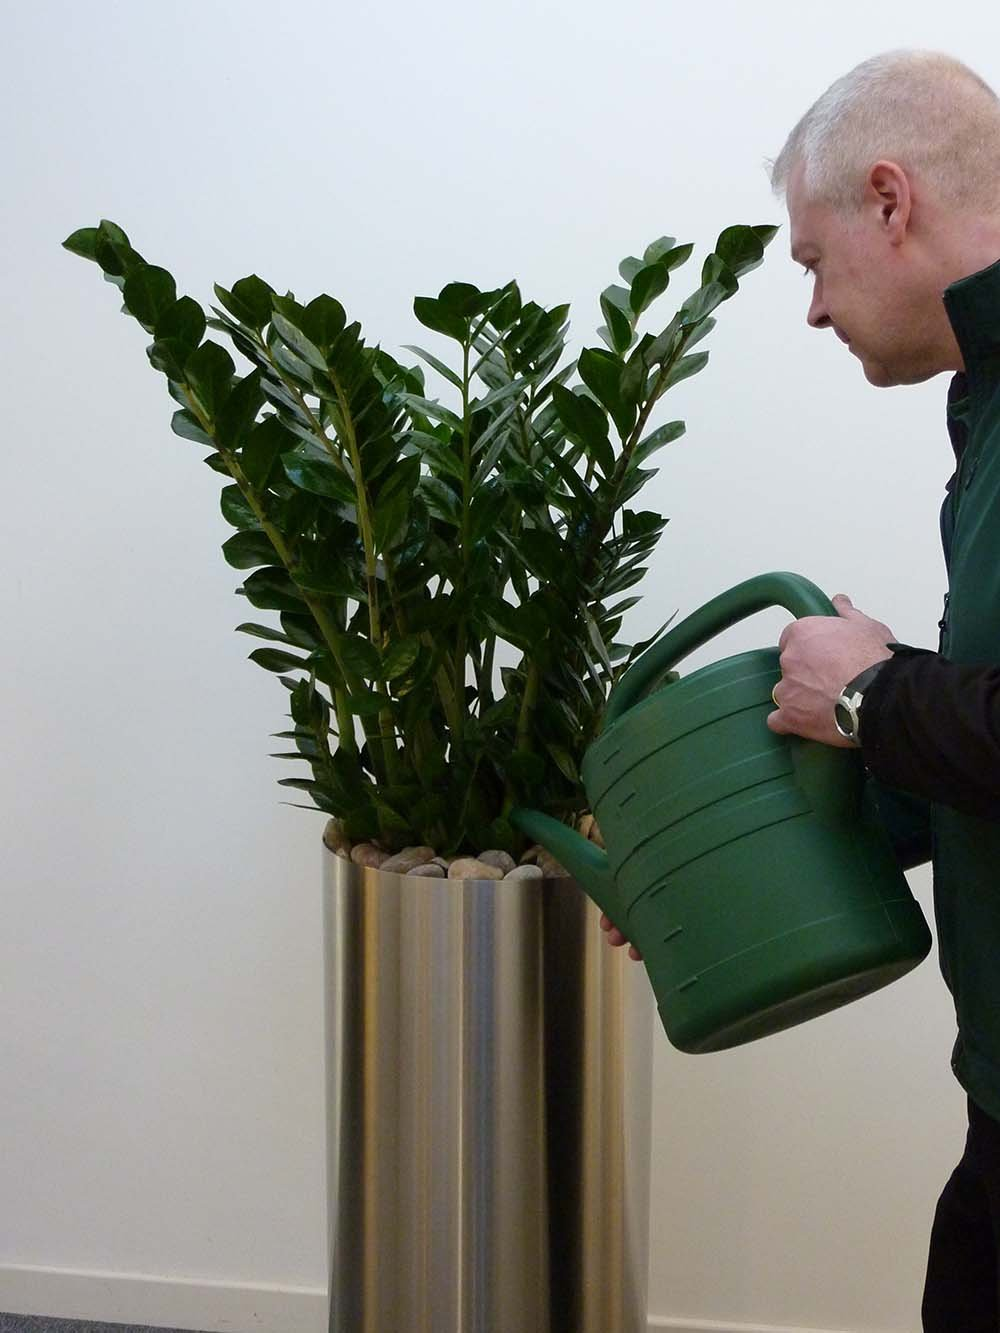 Benholm plant maintenance technician watering a live zamioculcas plant in a tall stainless steel planter